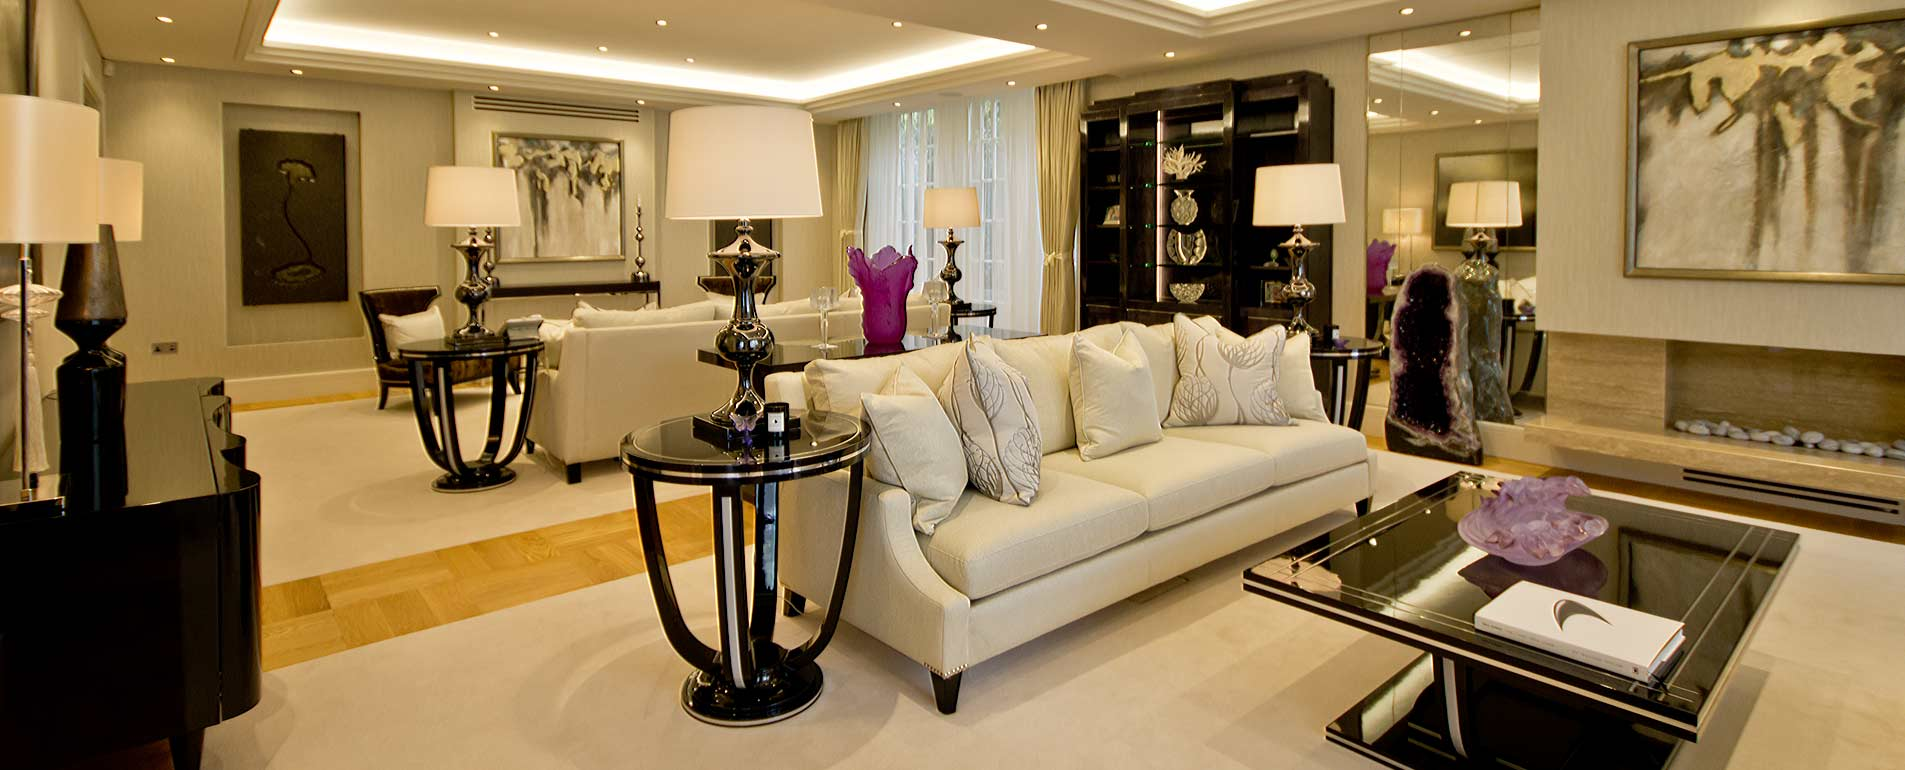 lounge luxury residential refurbishment